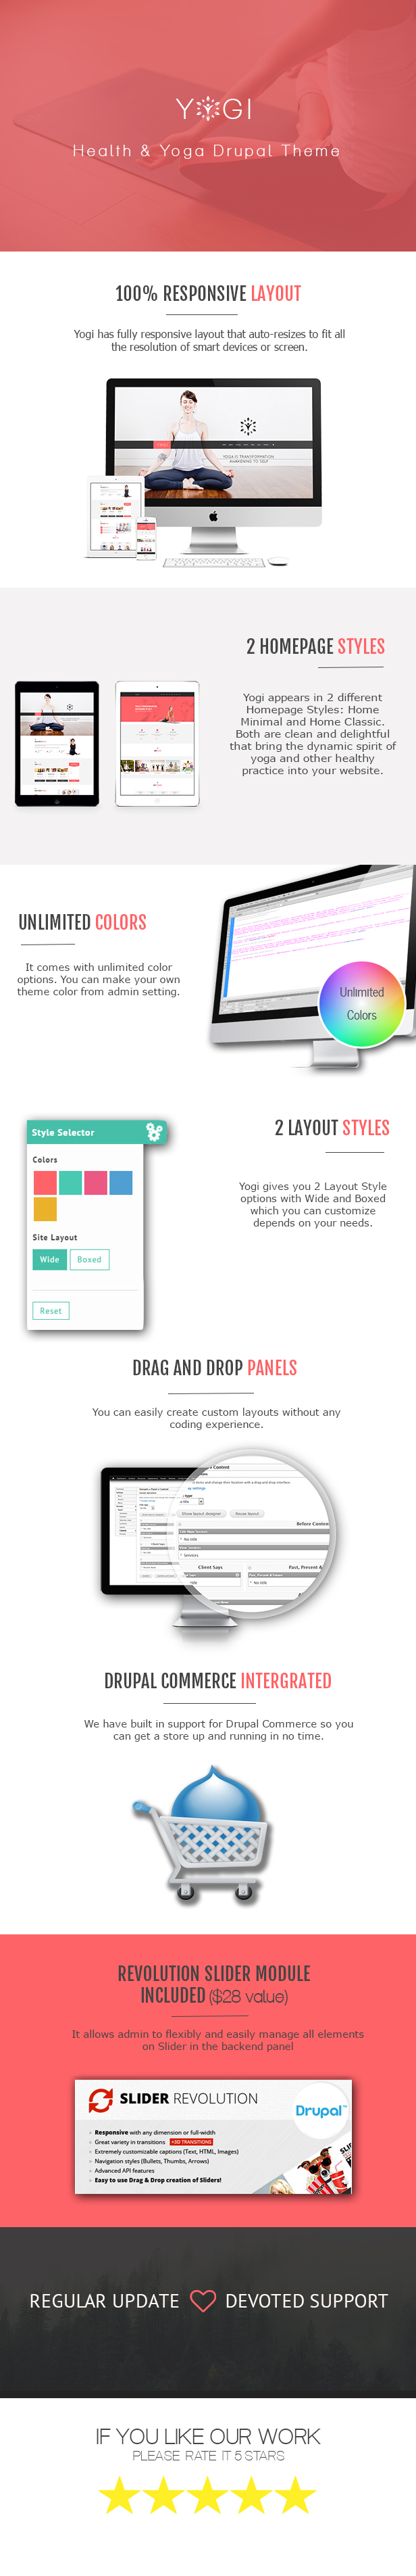 yogi drupal theme features